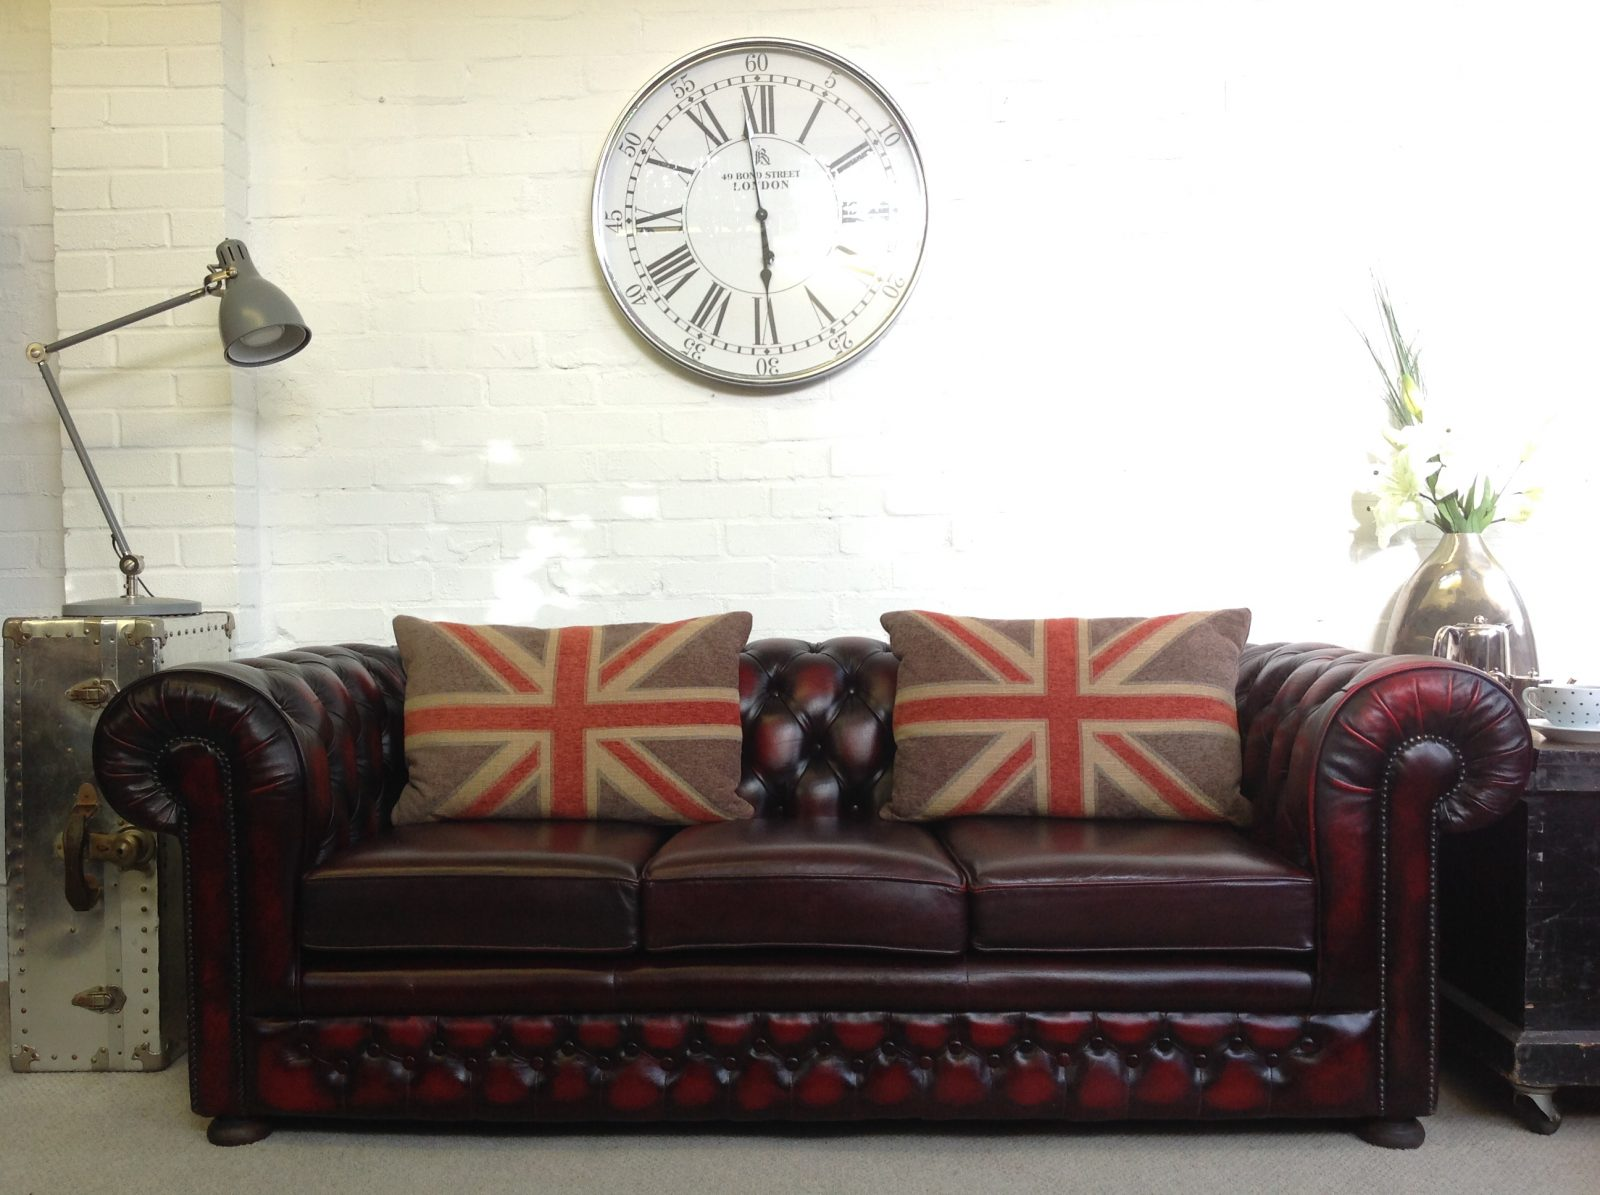 Chesterfields at the Boathouse u2013 Vintage Chesterfield Sofas